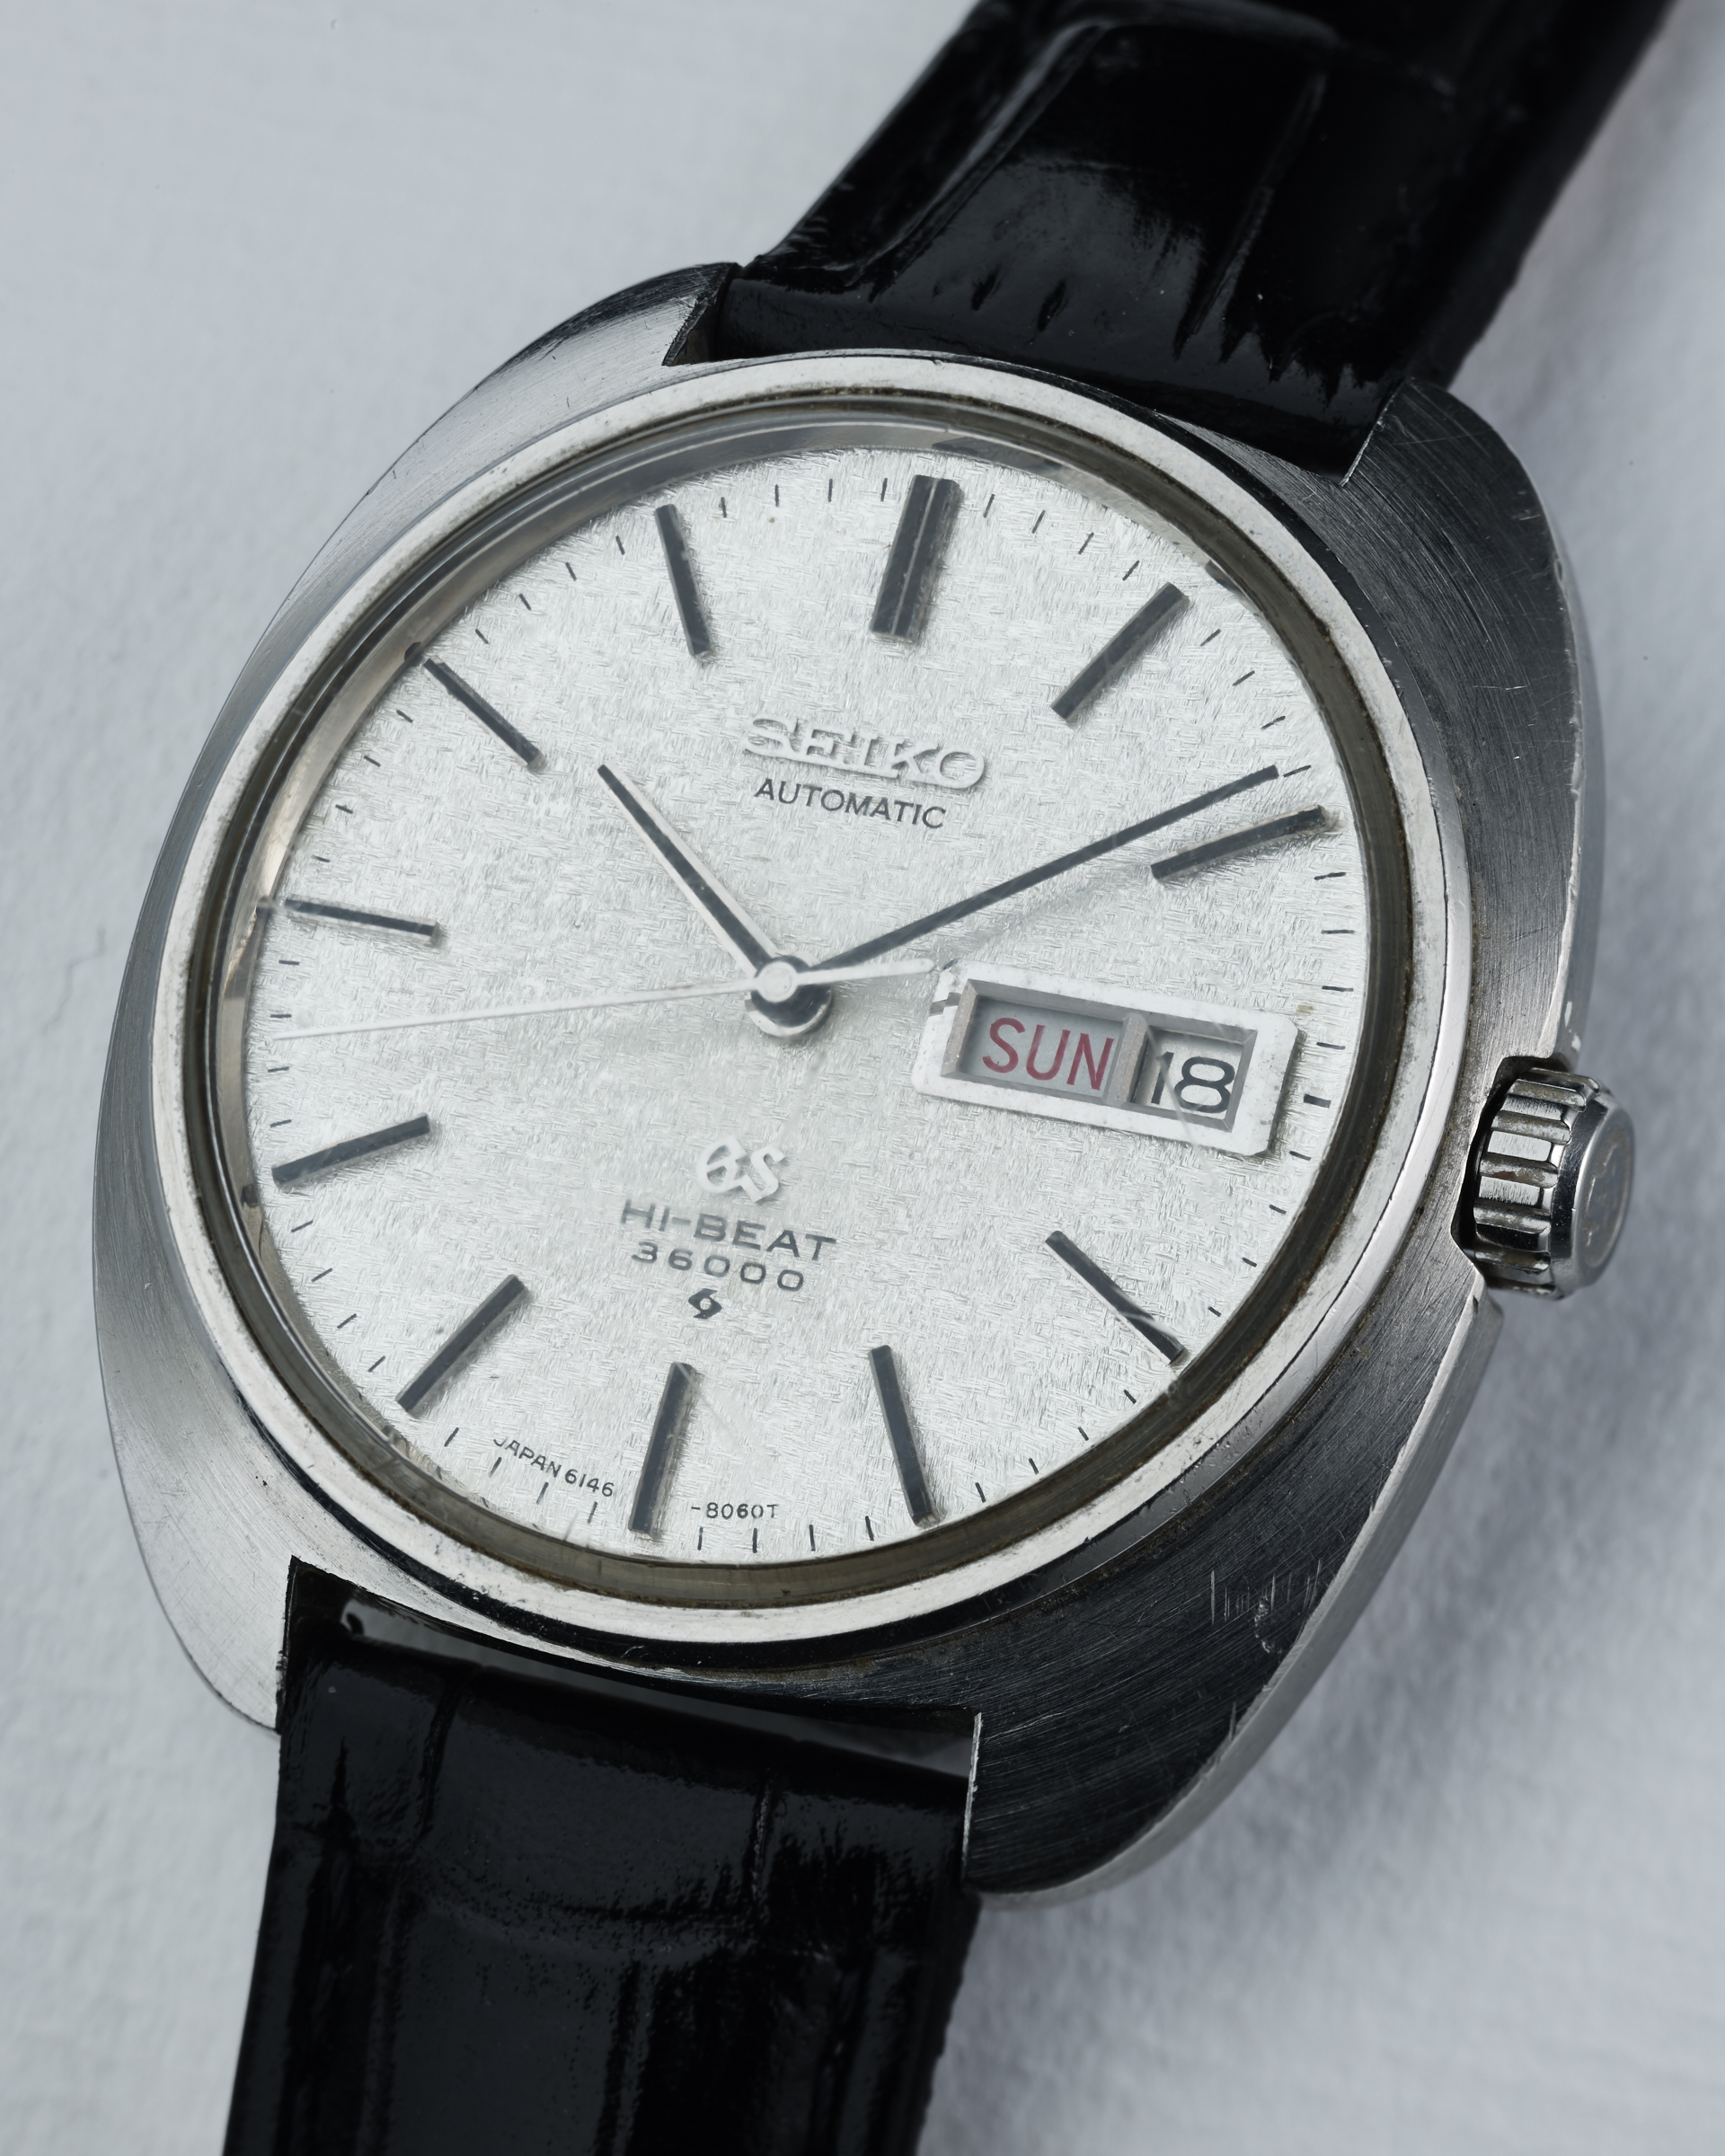 an grand edition watches exquisite limited makes seiko gift blog festive